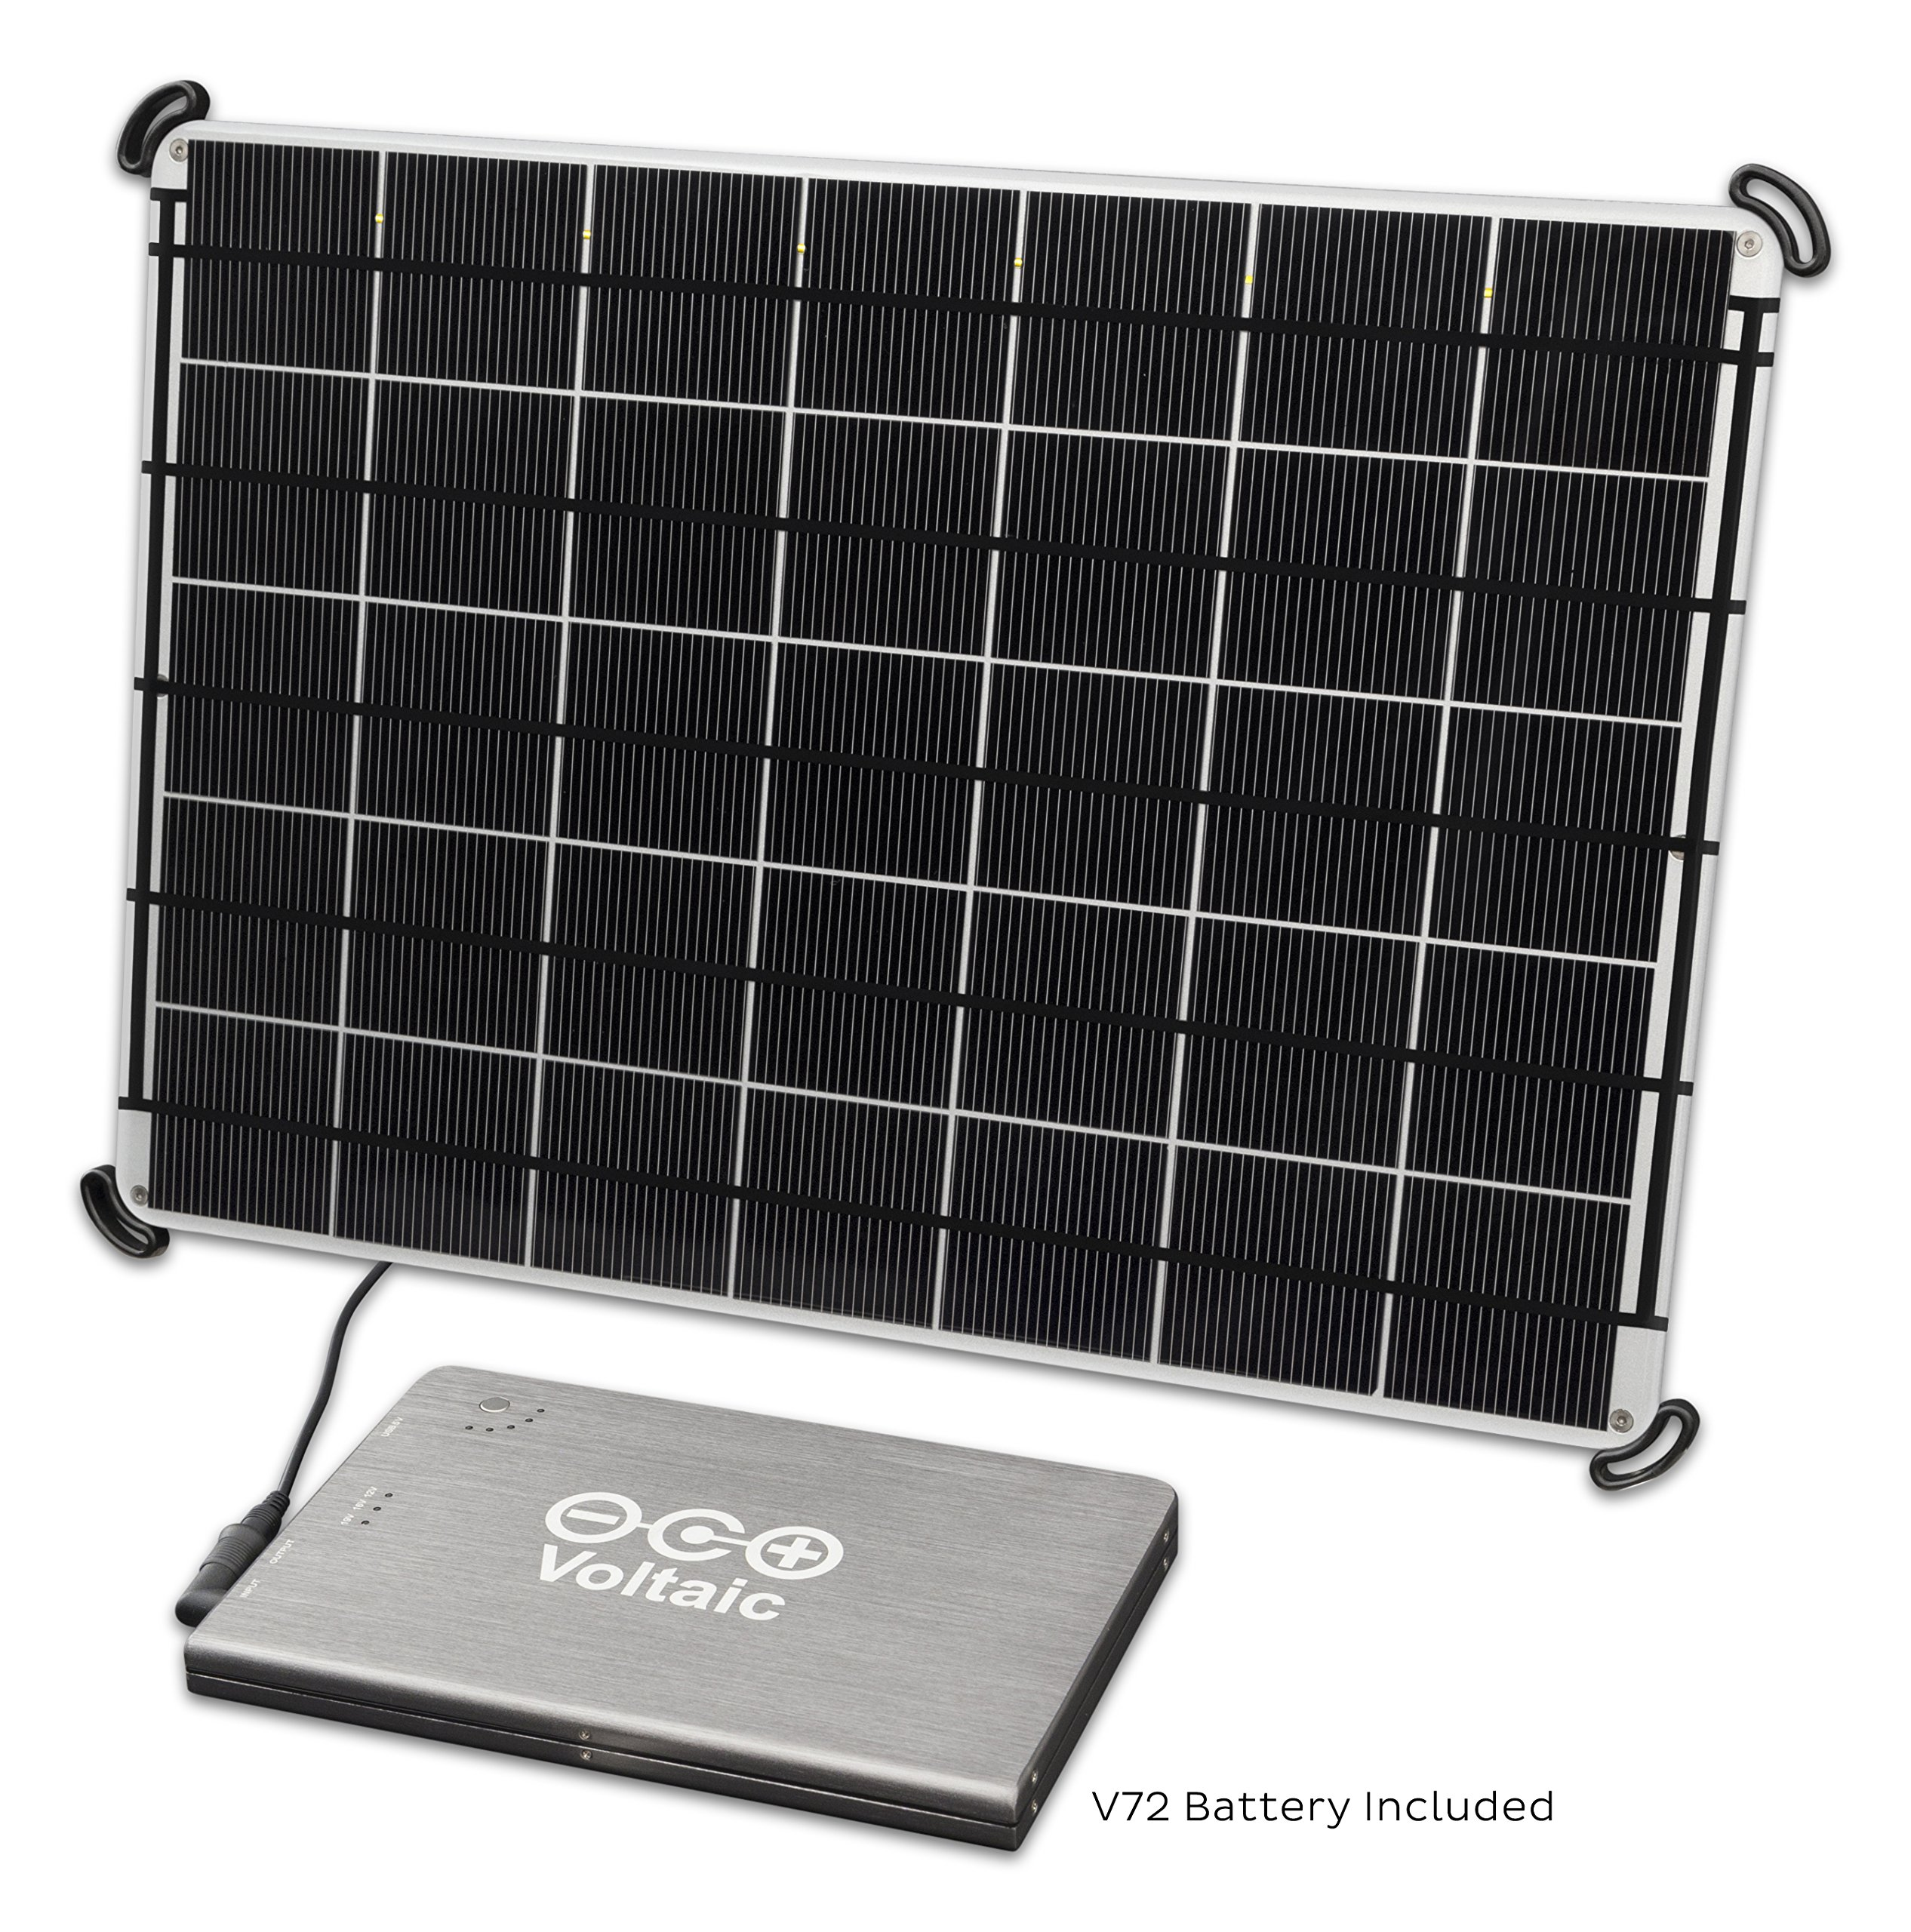 Voltaic Systems 17 Watt Rapid Solar Panel Charger for Laptops (Including MacBooks with an Adapter) | Includes a Battery Pack (Power Bank) and 2 Year Warranty - Silver by Voltaic Systems